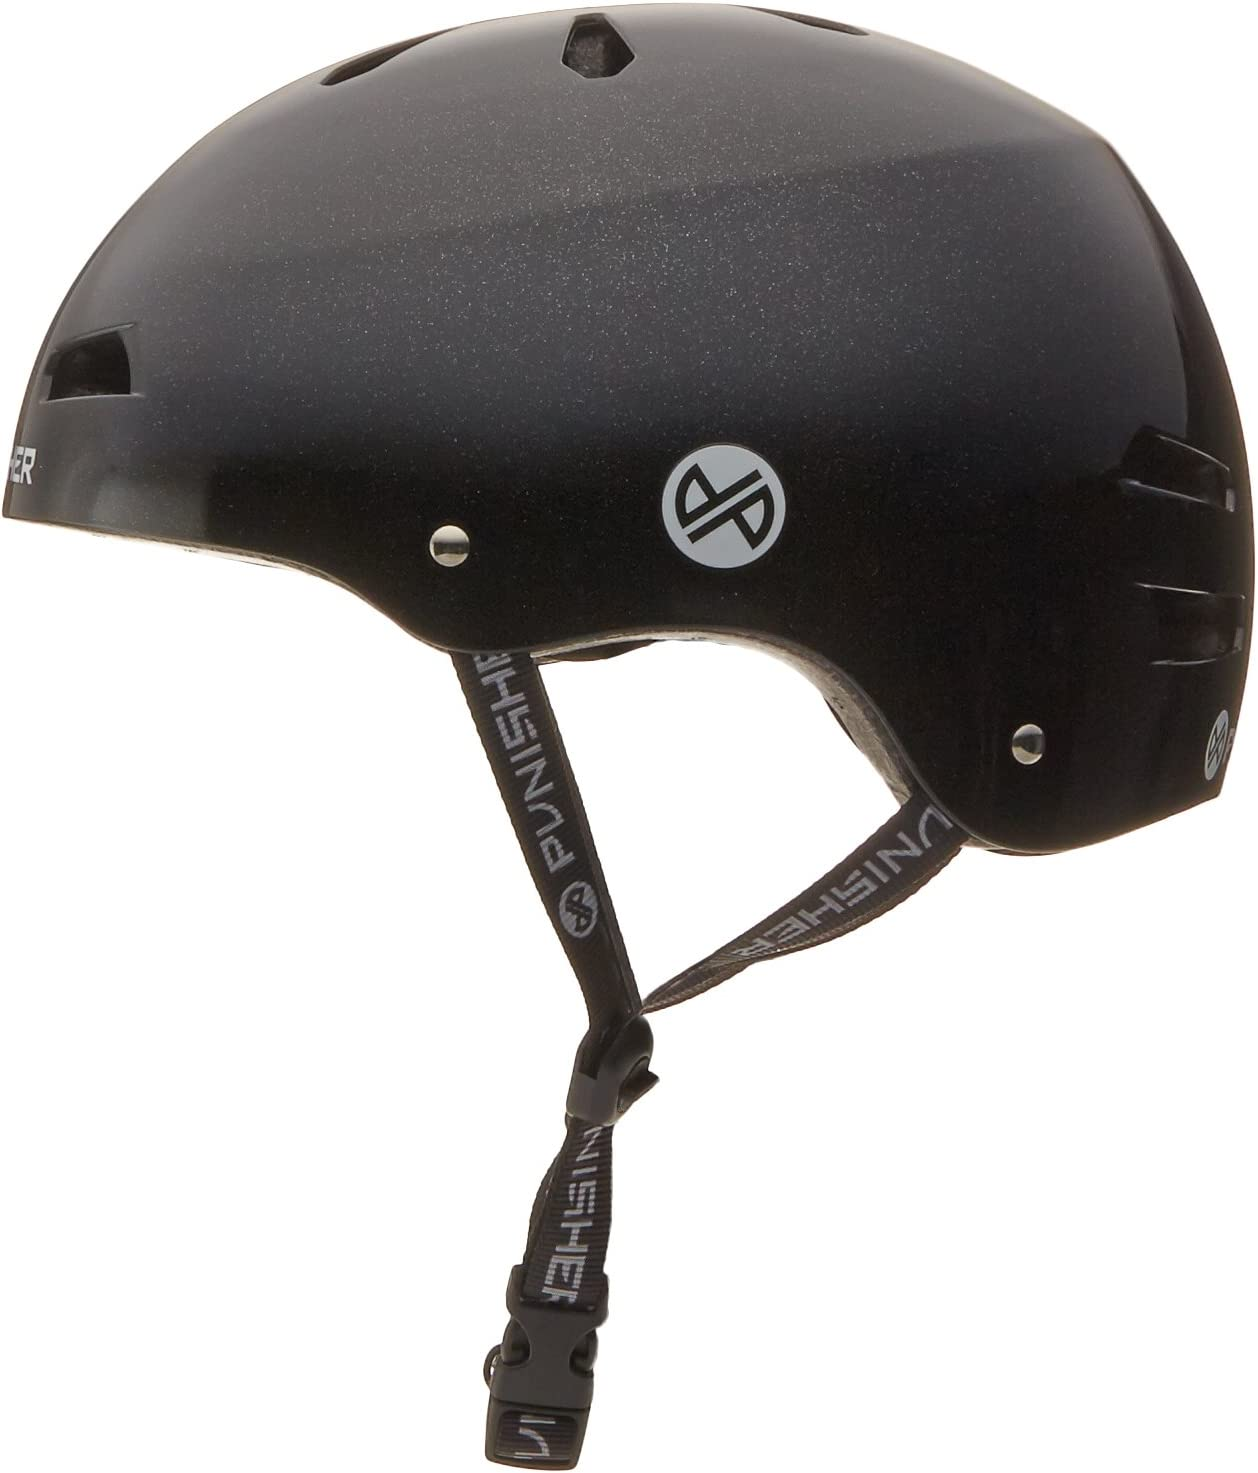 Youth//Teen 9+ Punisher Skateboards Pro Series 13-Vent Dual Safety Certified BMX Bike and Skateboard Helmet